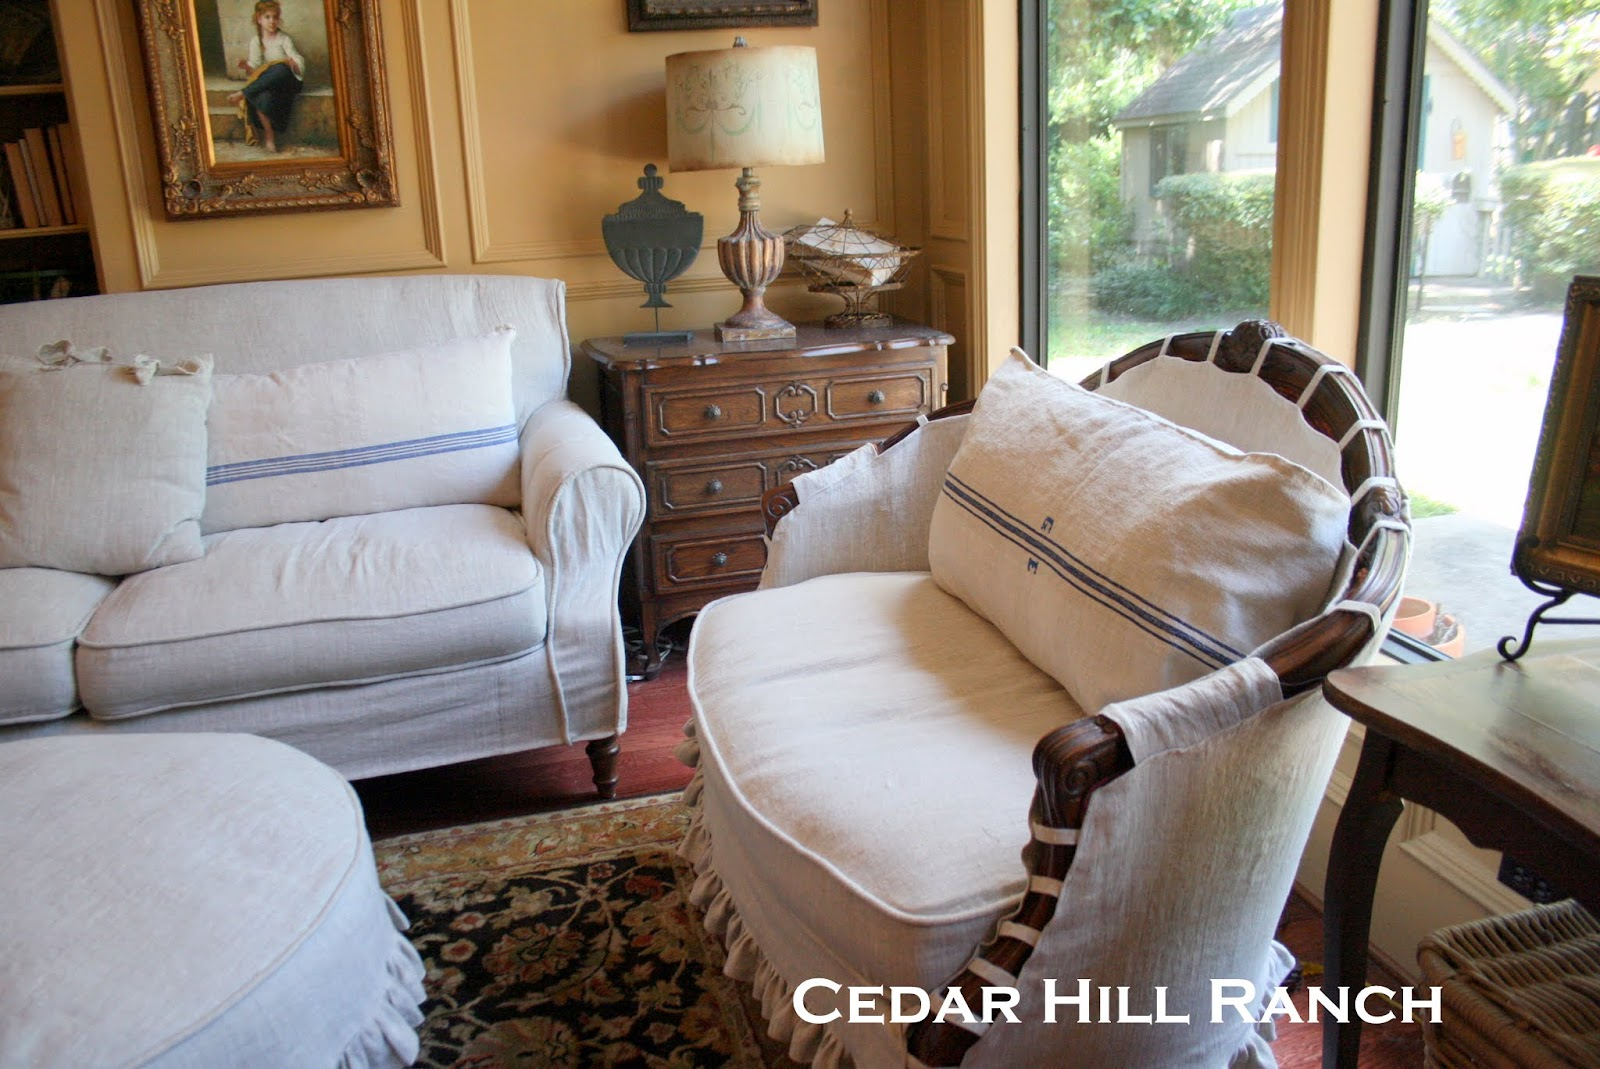 french linen slipcovers cedar hill farmhouse i had covered a settee just like the ones in my living room here i didn t want the slipcover to gape open since these settees would be used more than the